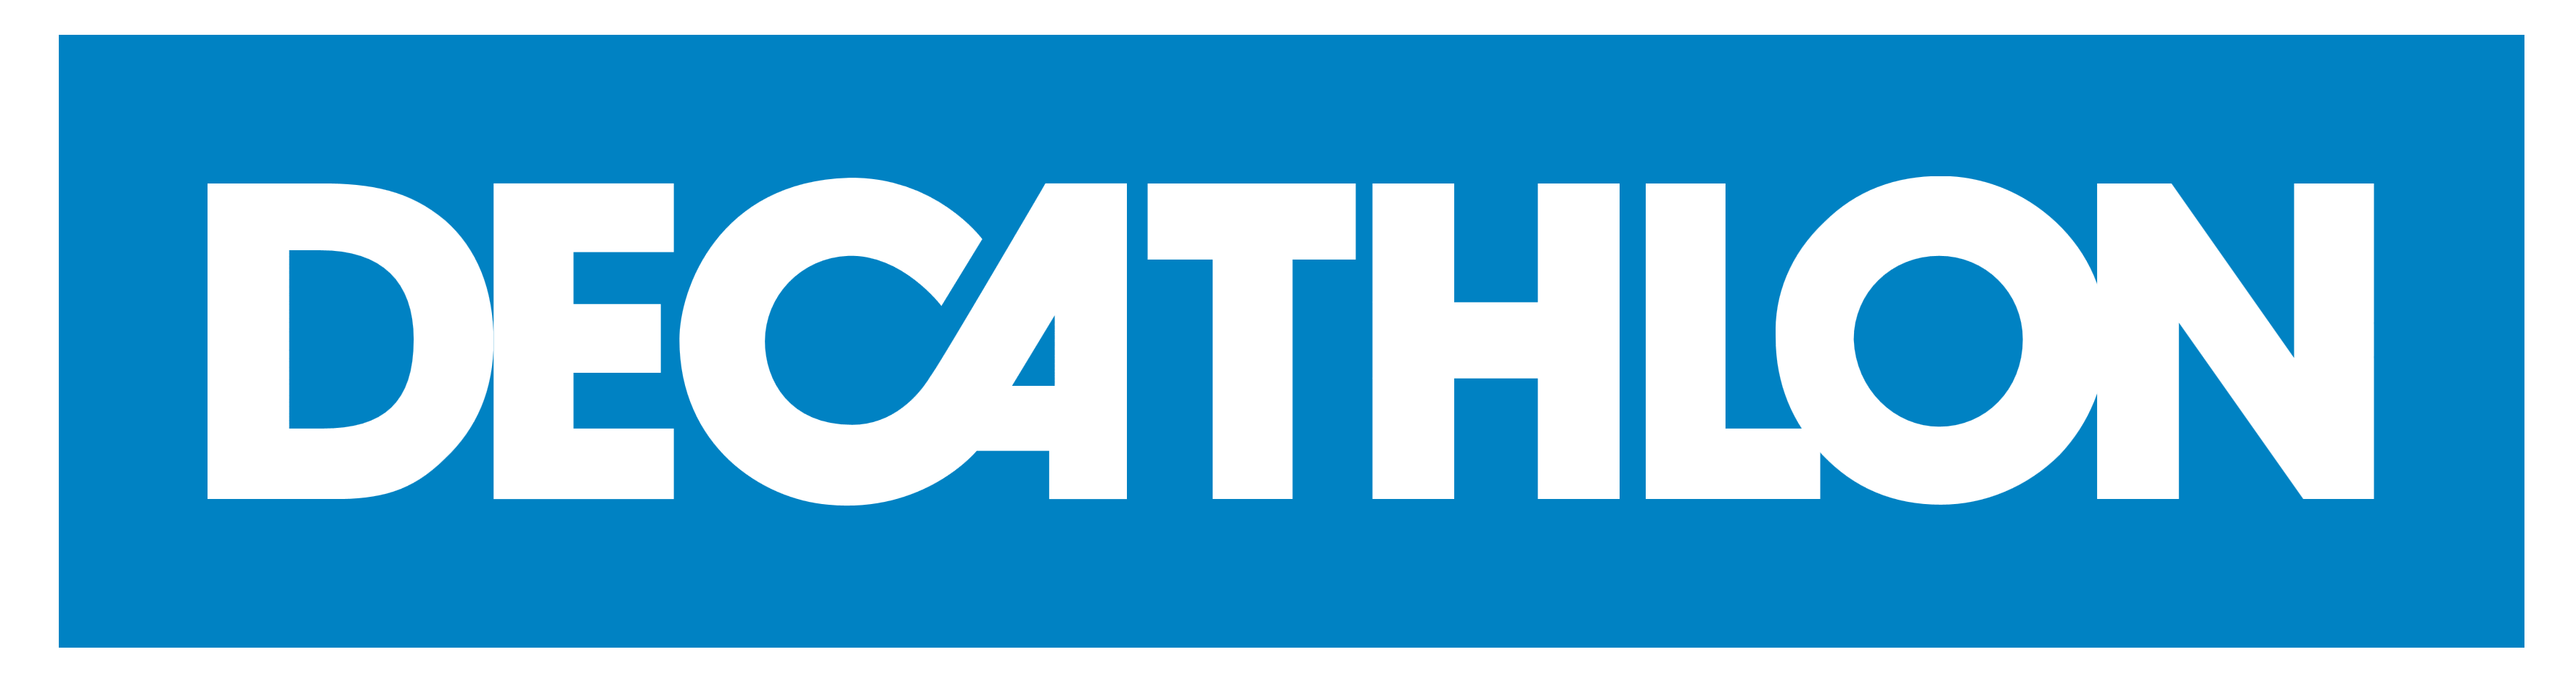 decathlon-logo_partner